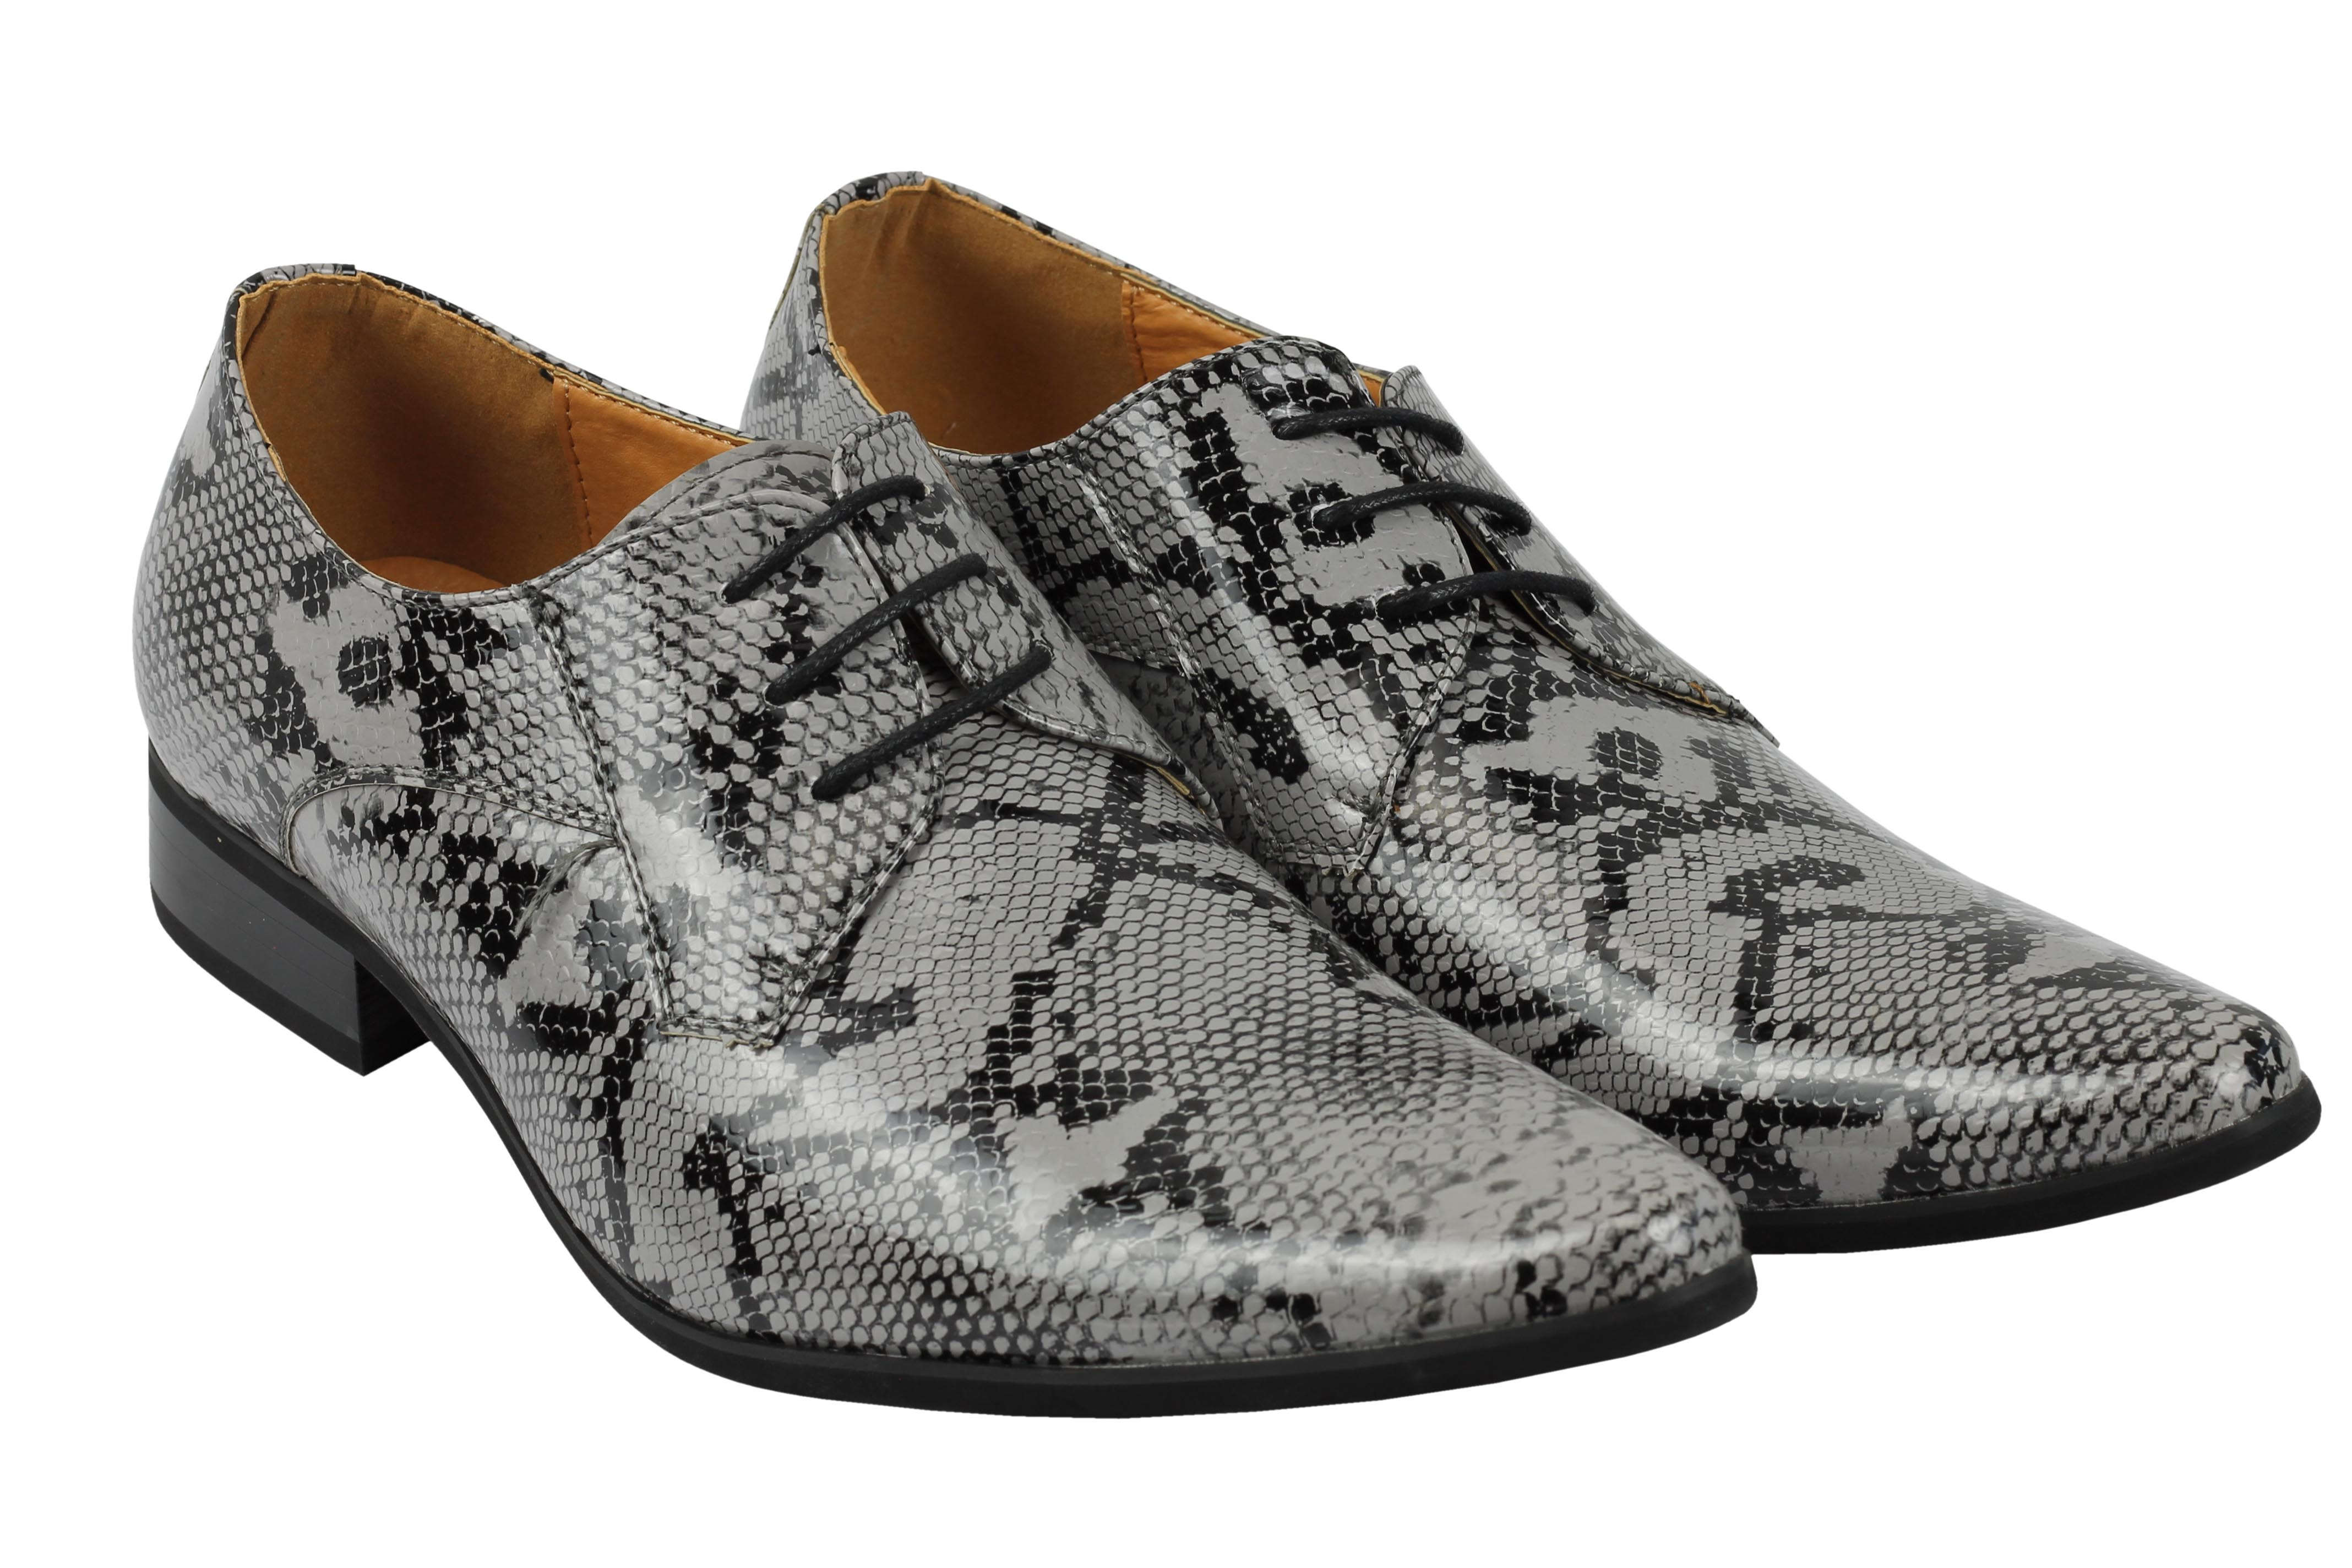 Mens-Leather-Lined-Snake-Skin-Print-Shiny-Patent-Leather-Smart-Party-Retro-Shoes thumbnail 15